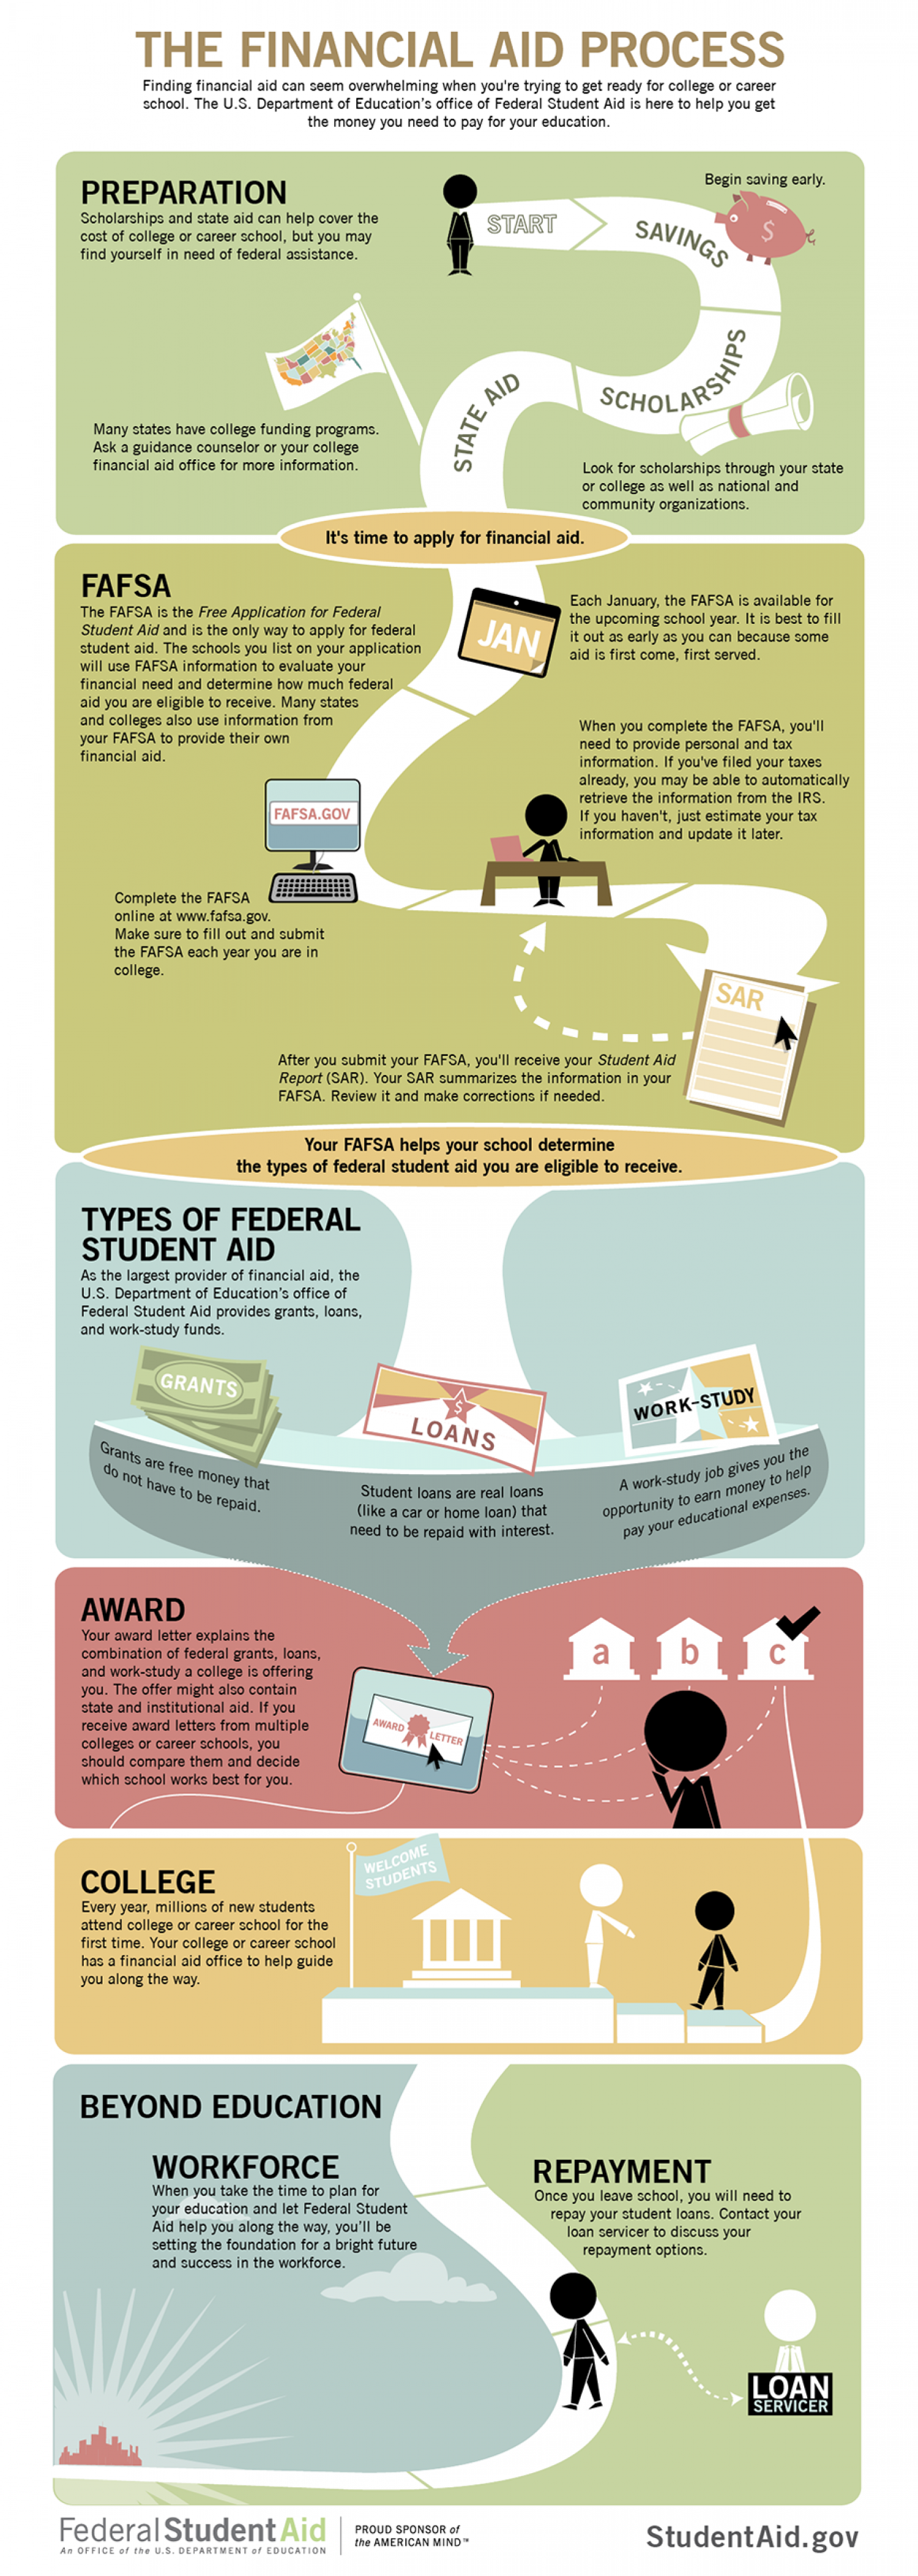 The Financial Aid Process Infographic